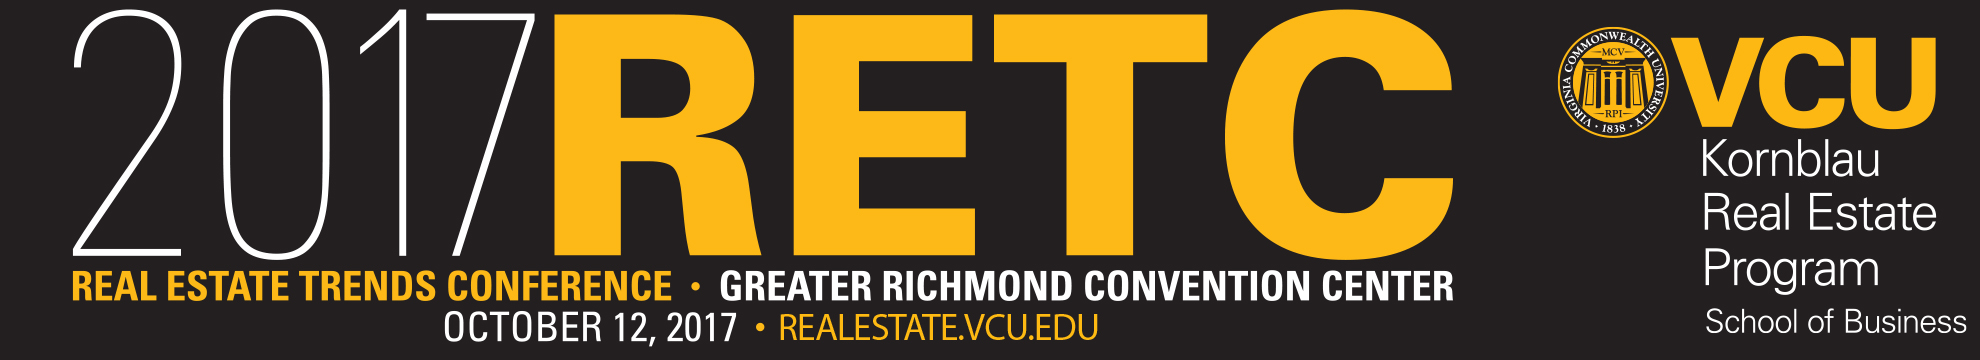 2017 VCU Real Estate Trends Conference